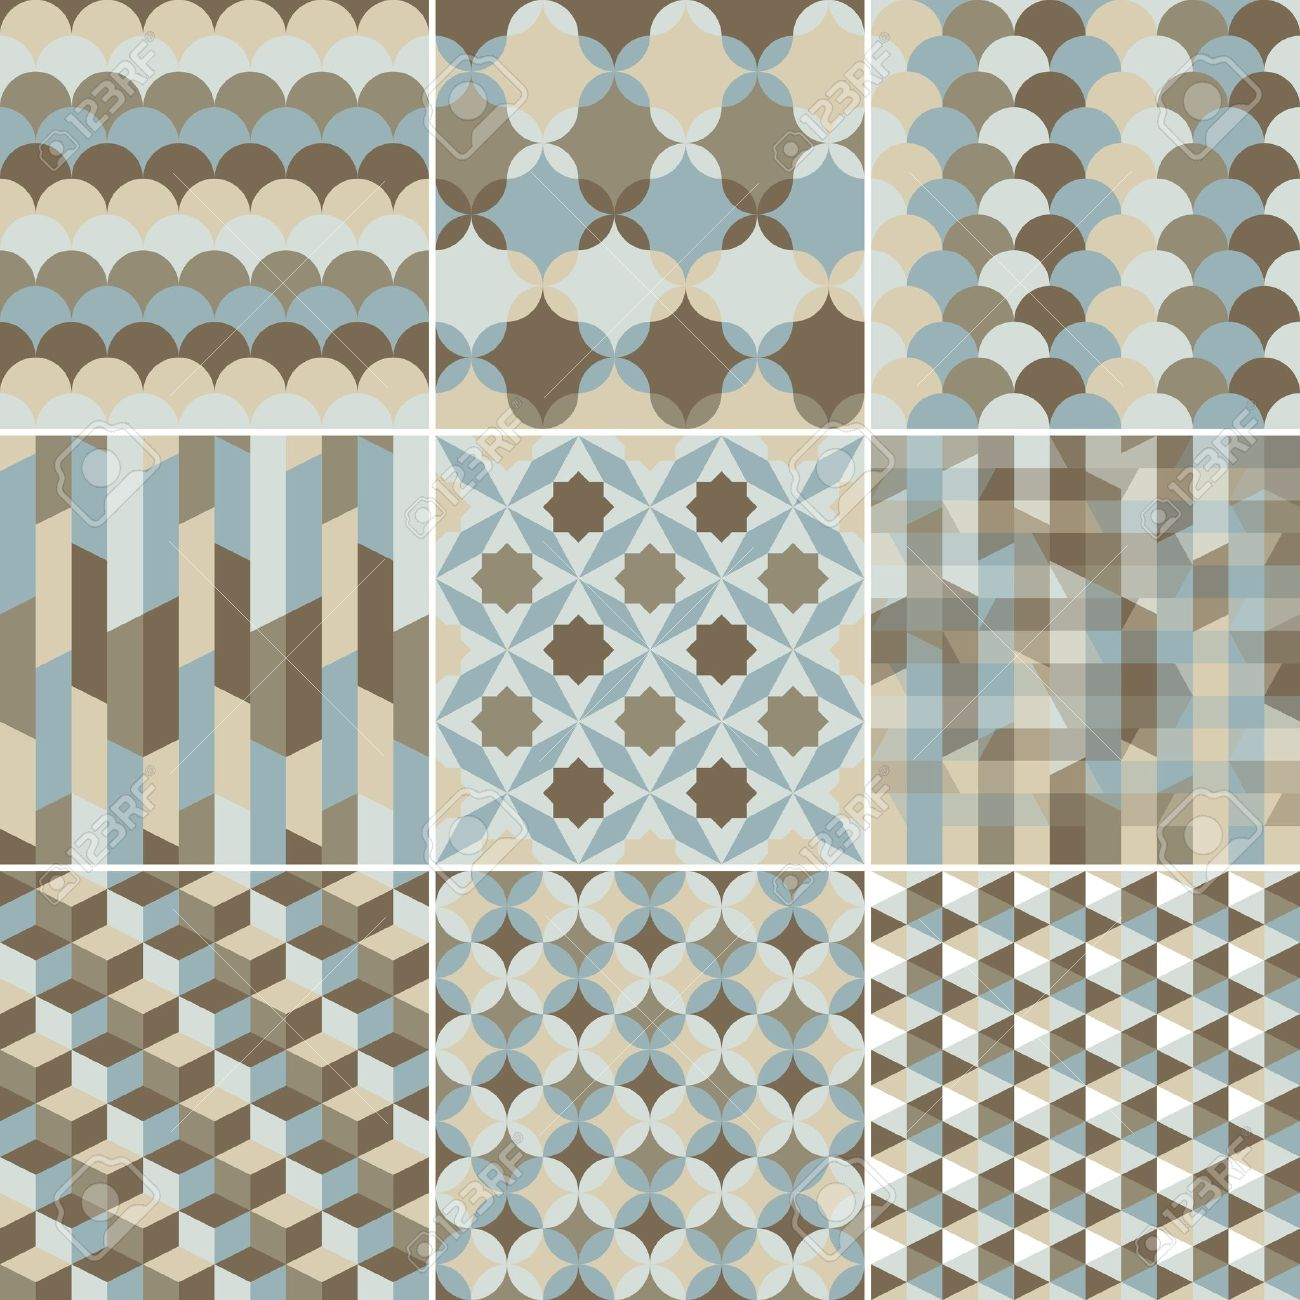 set of abstract geometric pattern background for design - 21396987